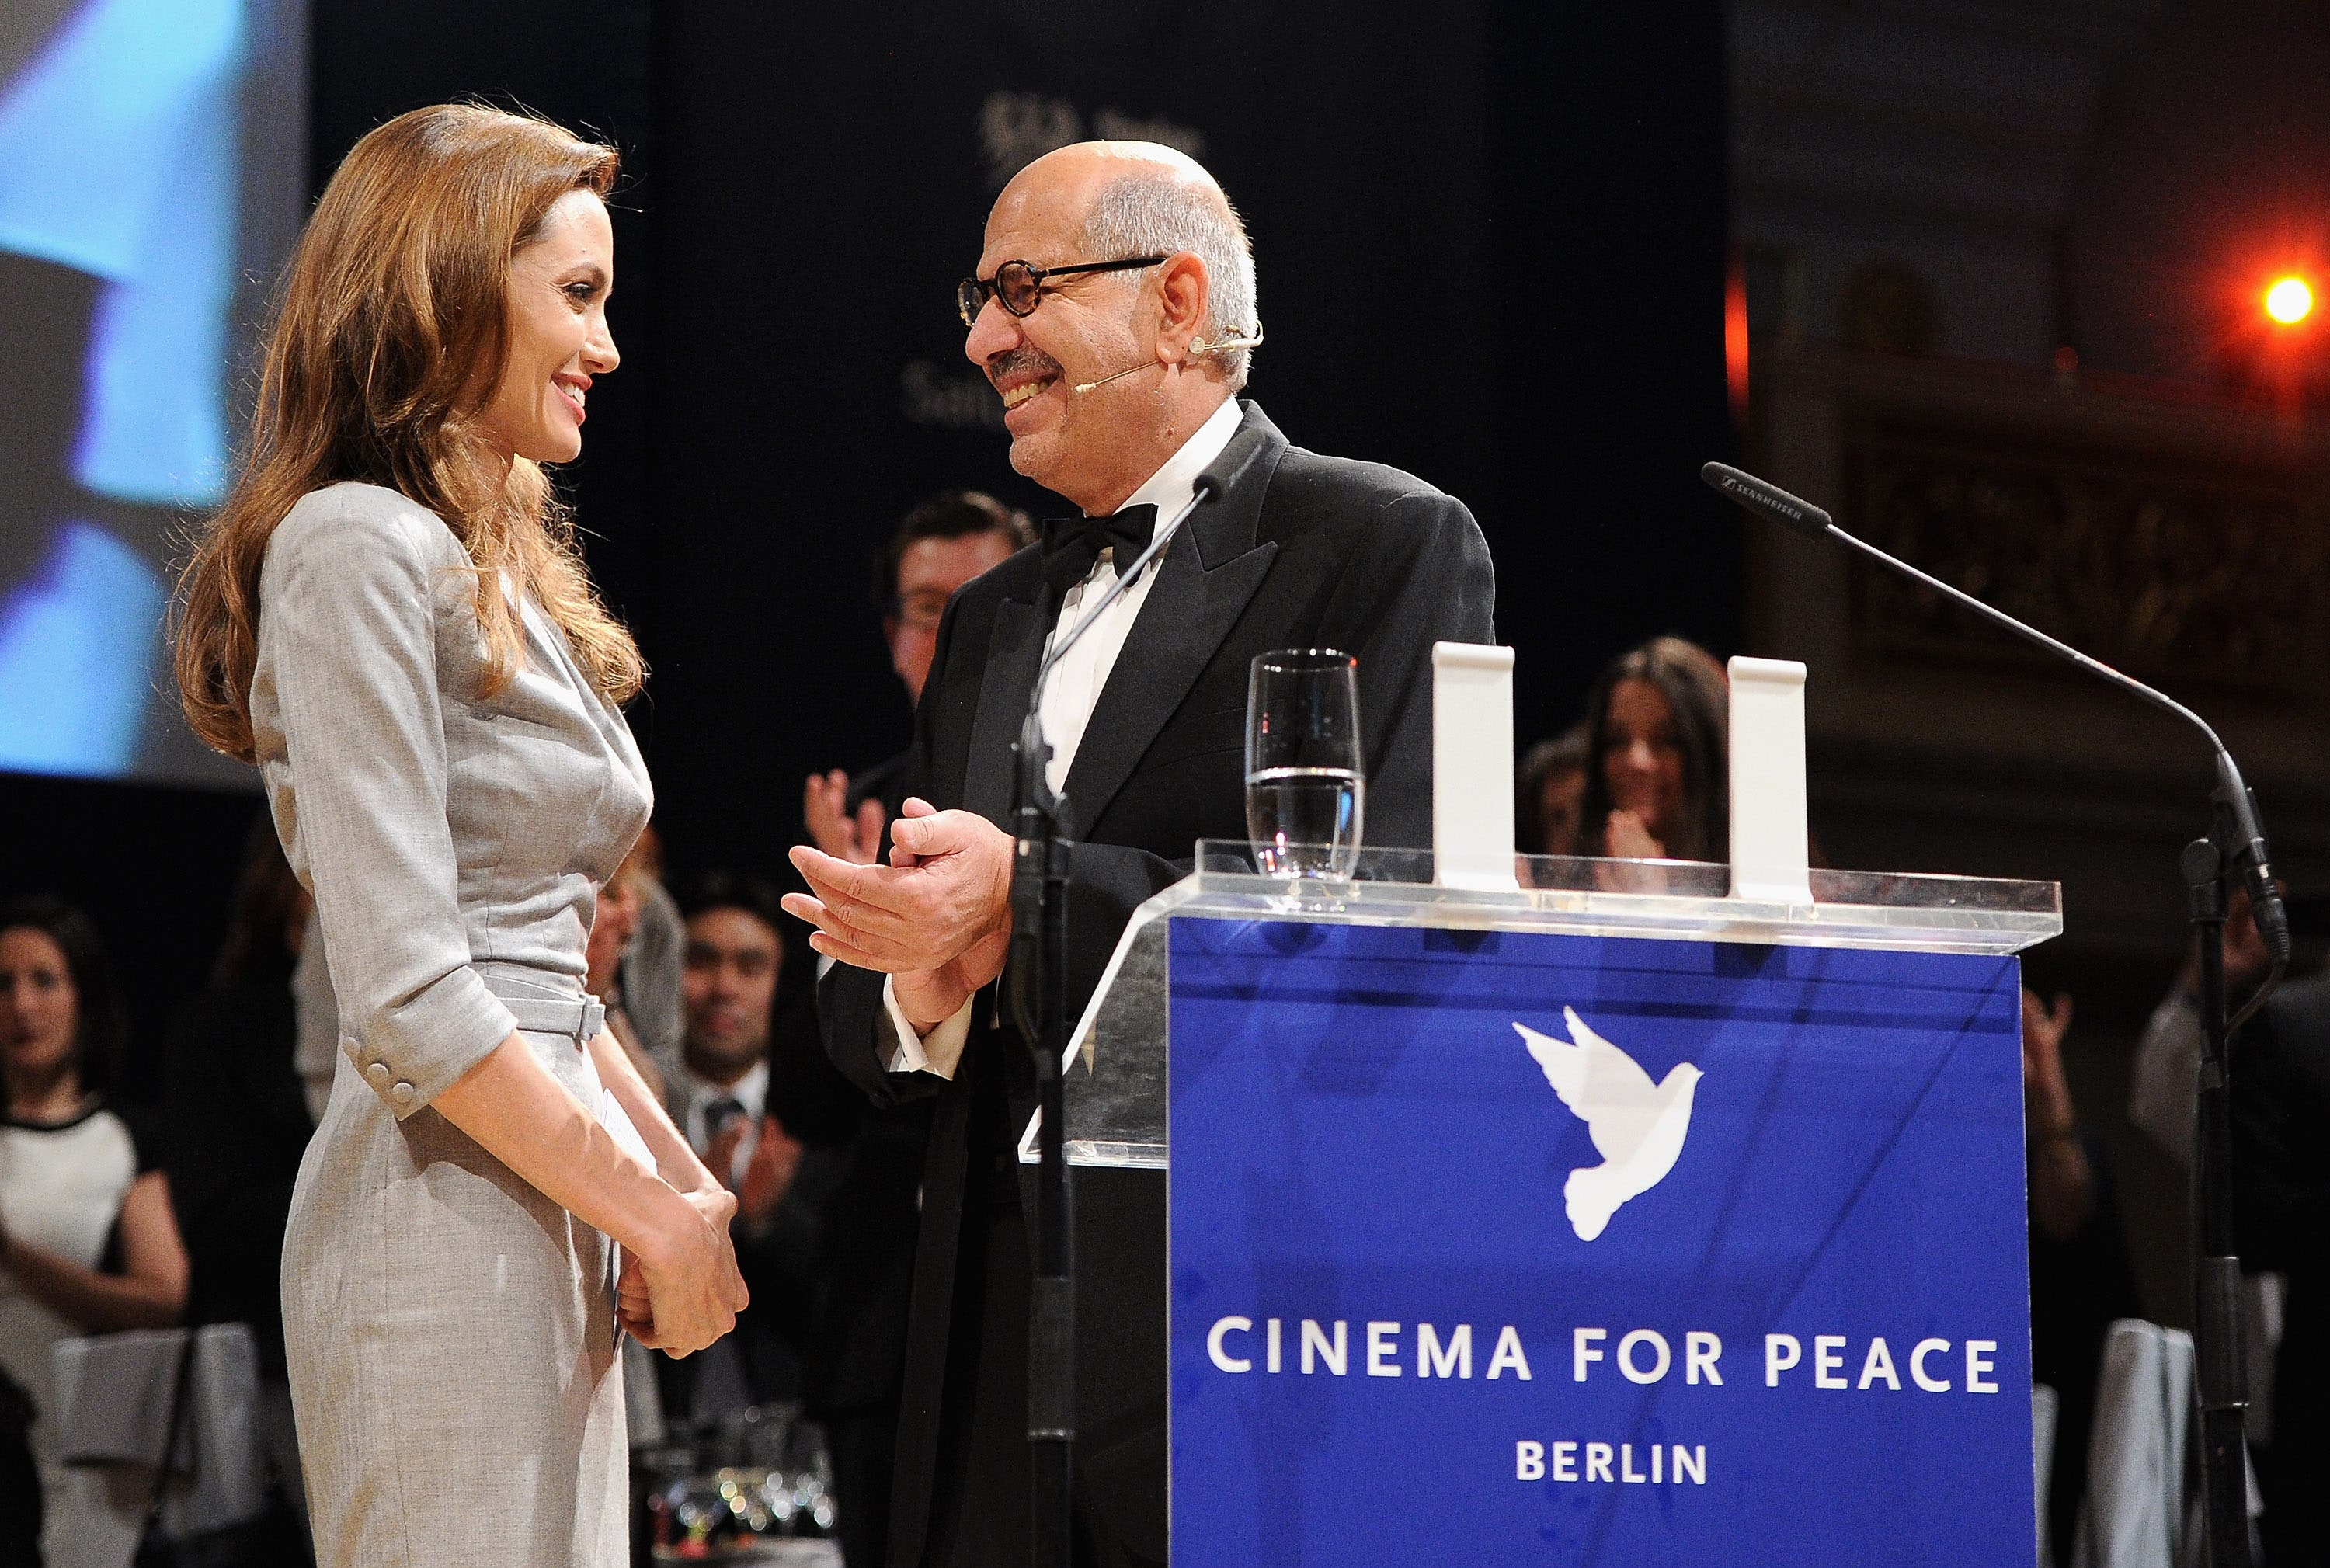 Mohamed ElBaradei and Angelina Jolie at the The Cinema of Peace Gala, where the famous kiss occurred.